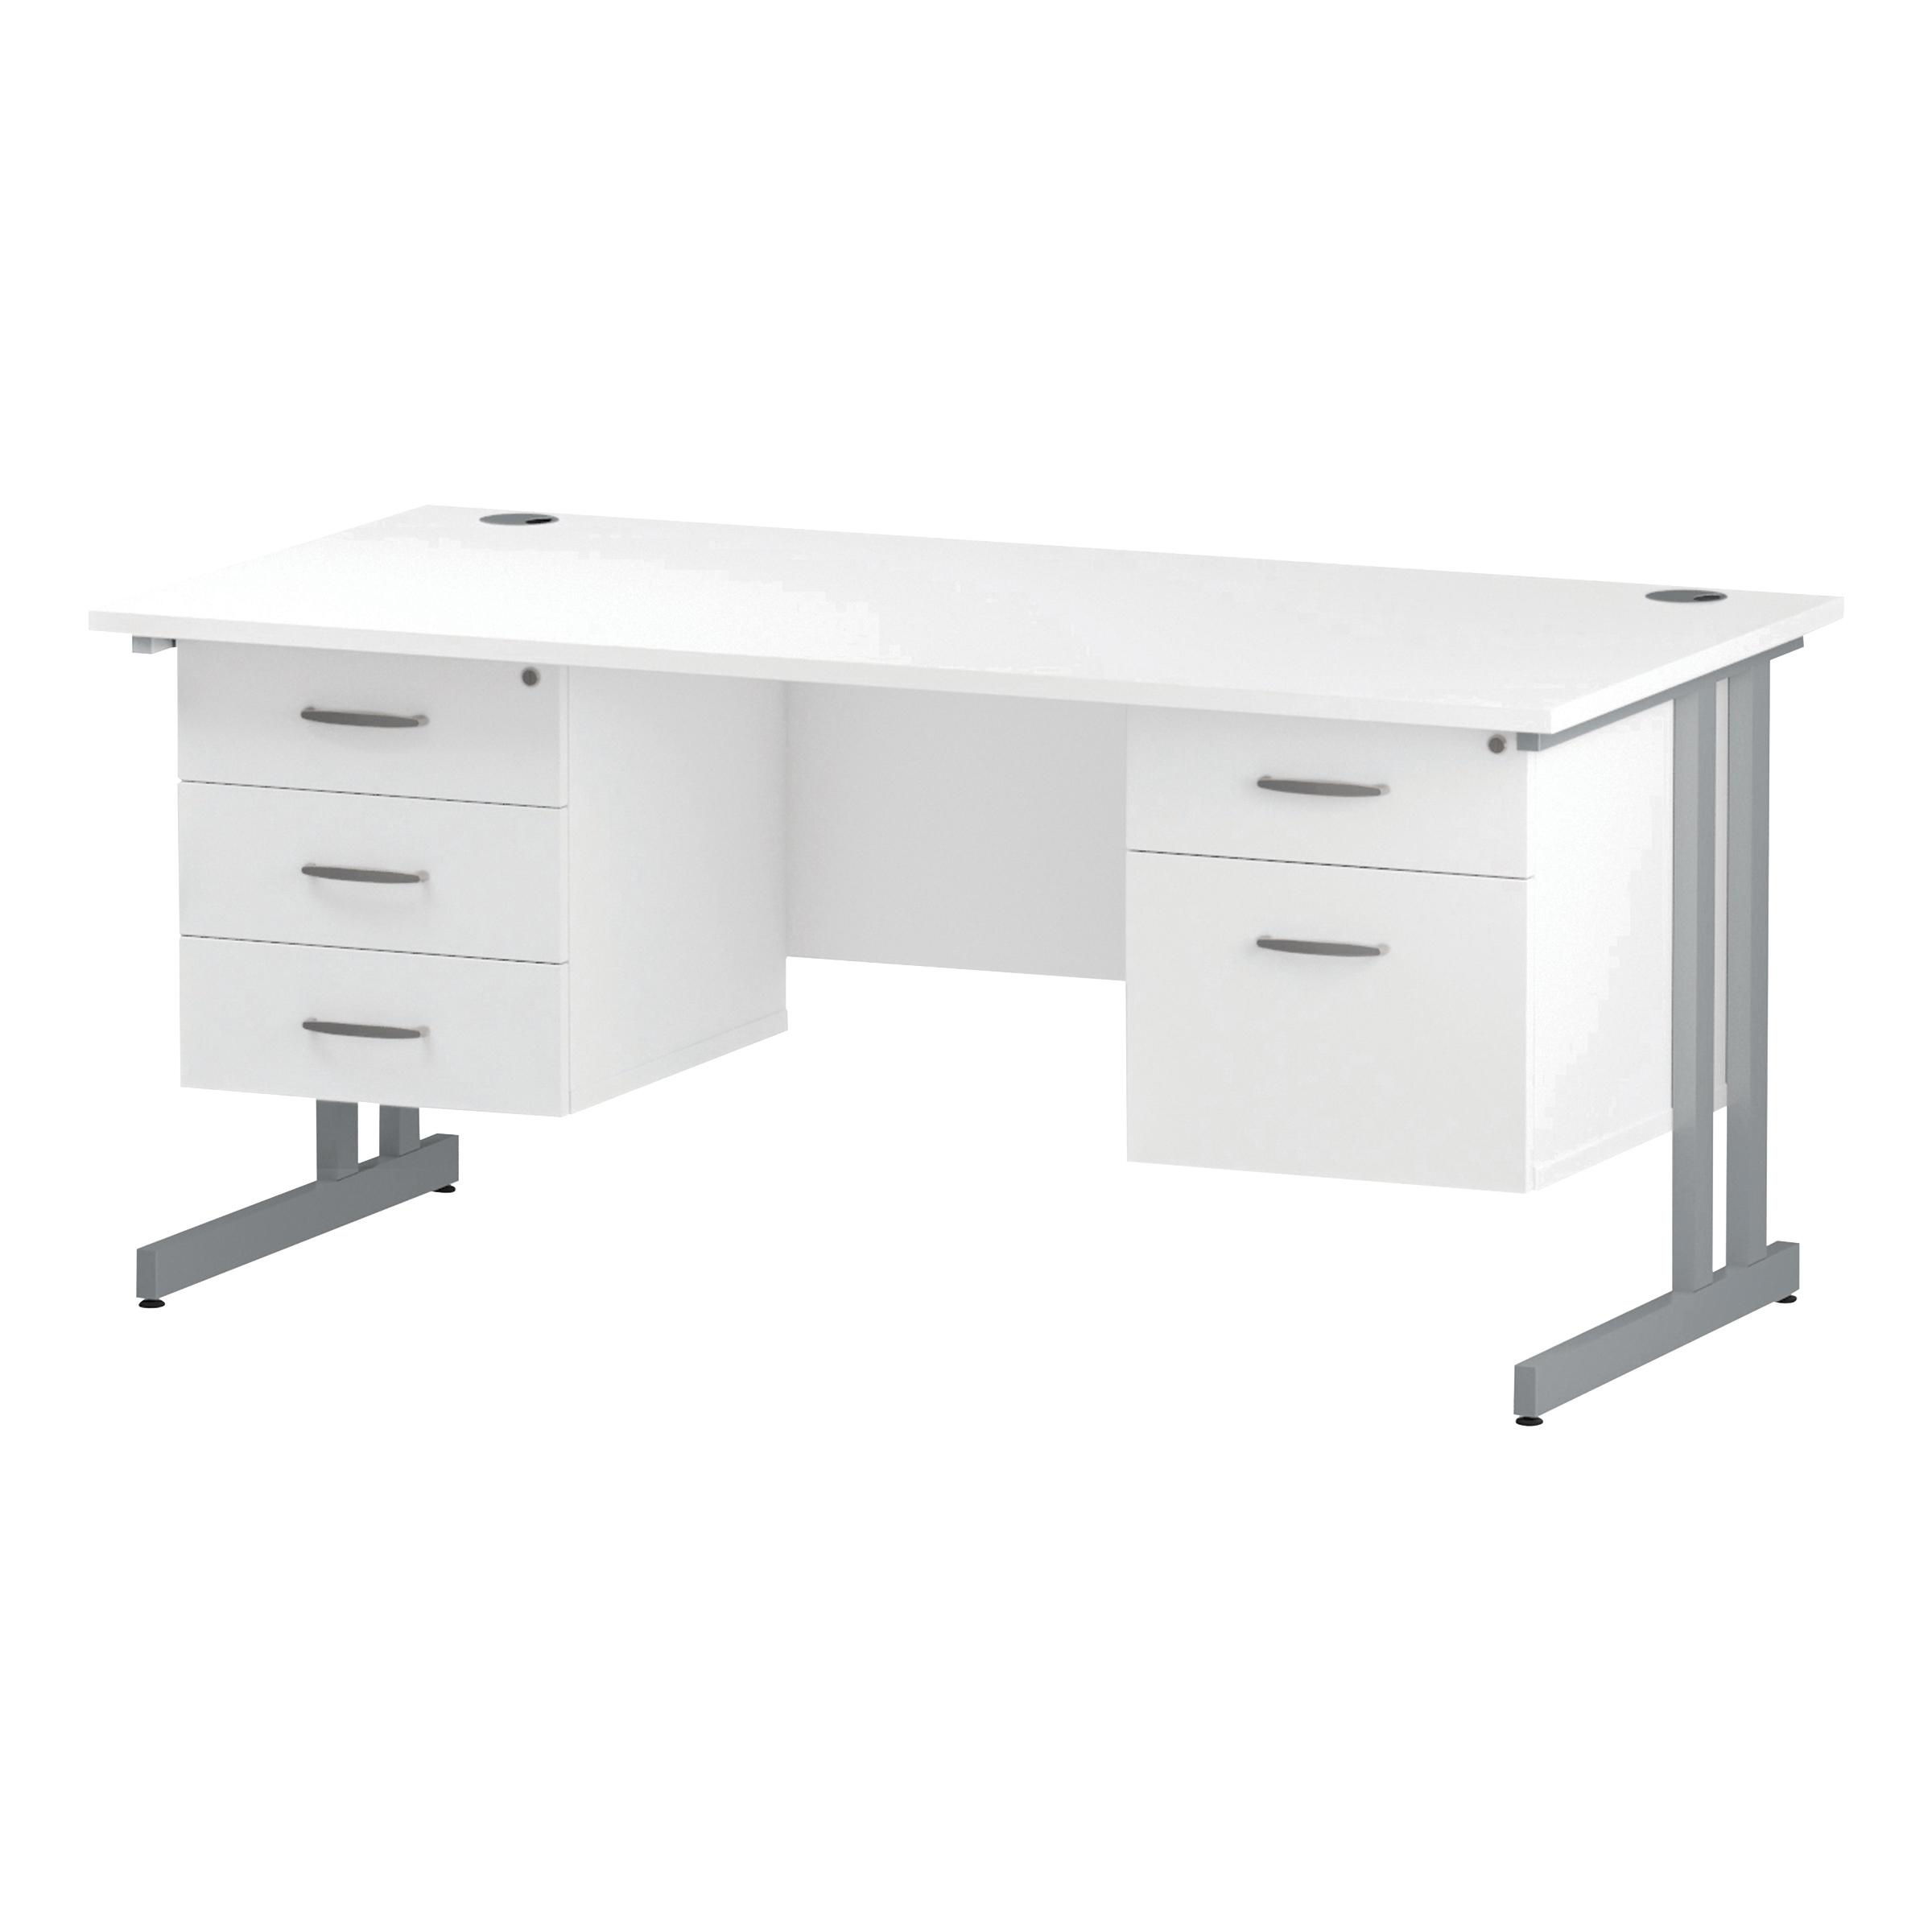 Trexus Rectangular Desk Silver Cantilever Leg 1600x800mm Double Fixed Ped 2&3 Drawers White Ref I002239